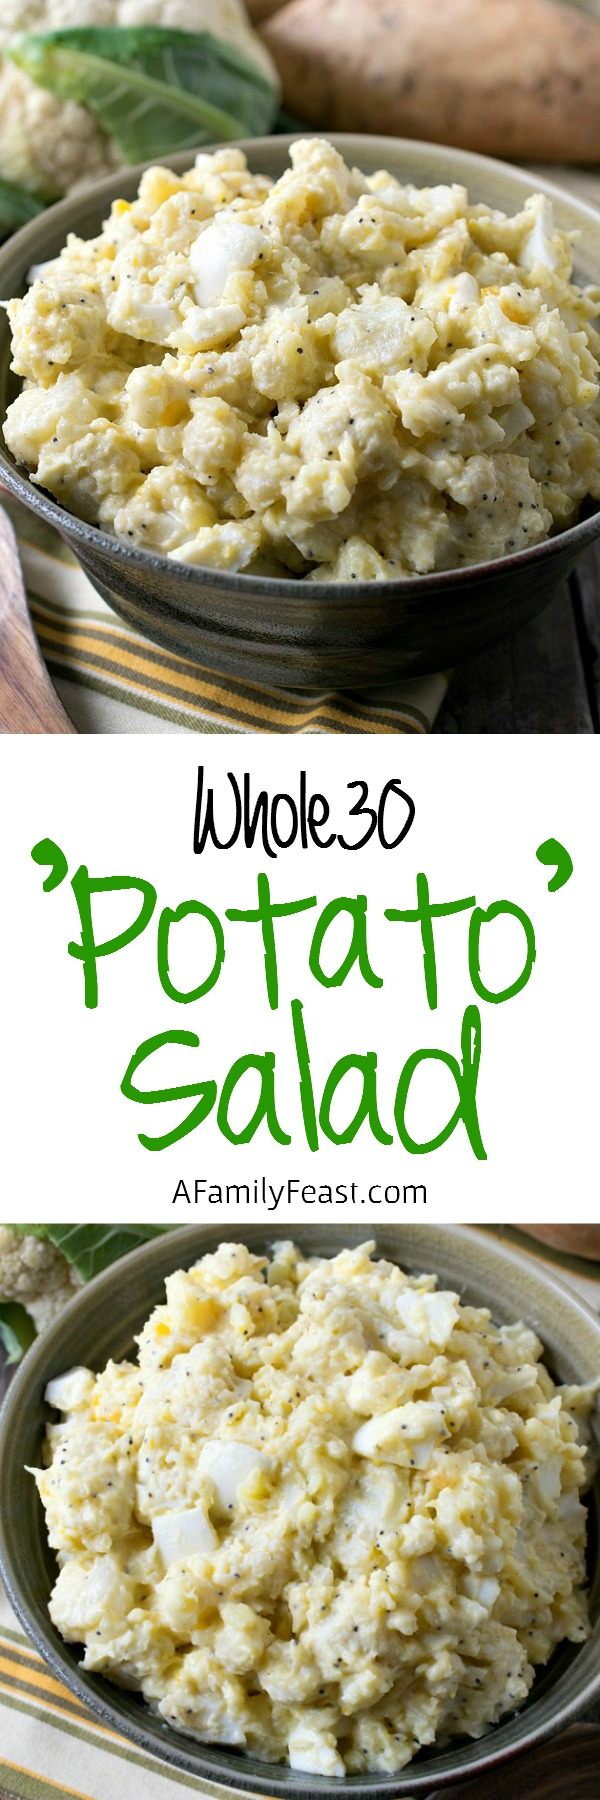 Whole30 Cauliflower and Yam 'Potato' Salad - This lower carb version has all of the same great flavors of our favorite potato salad!